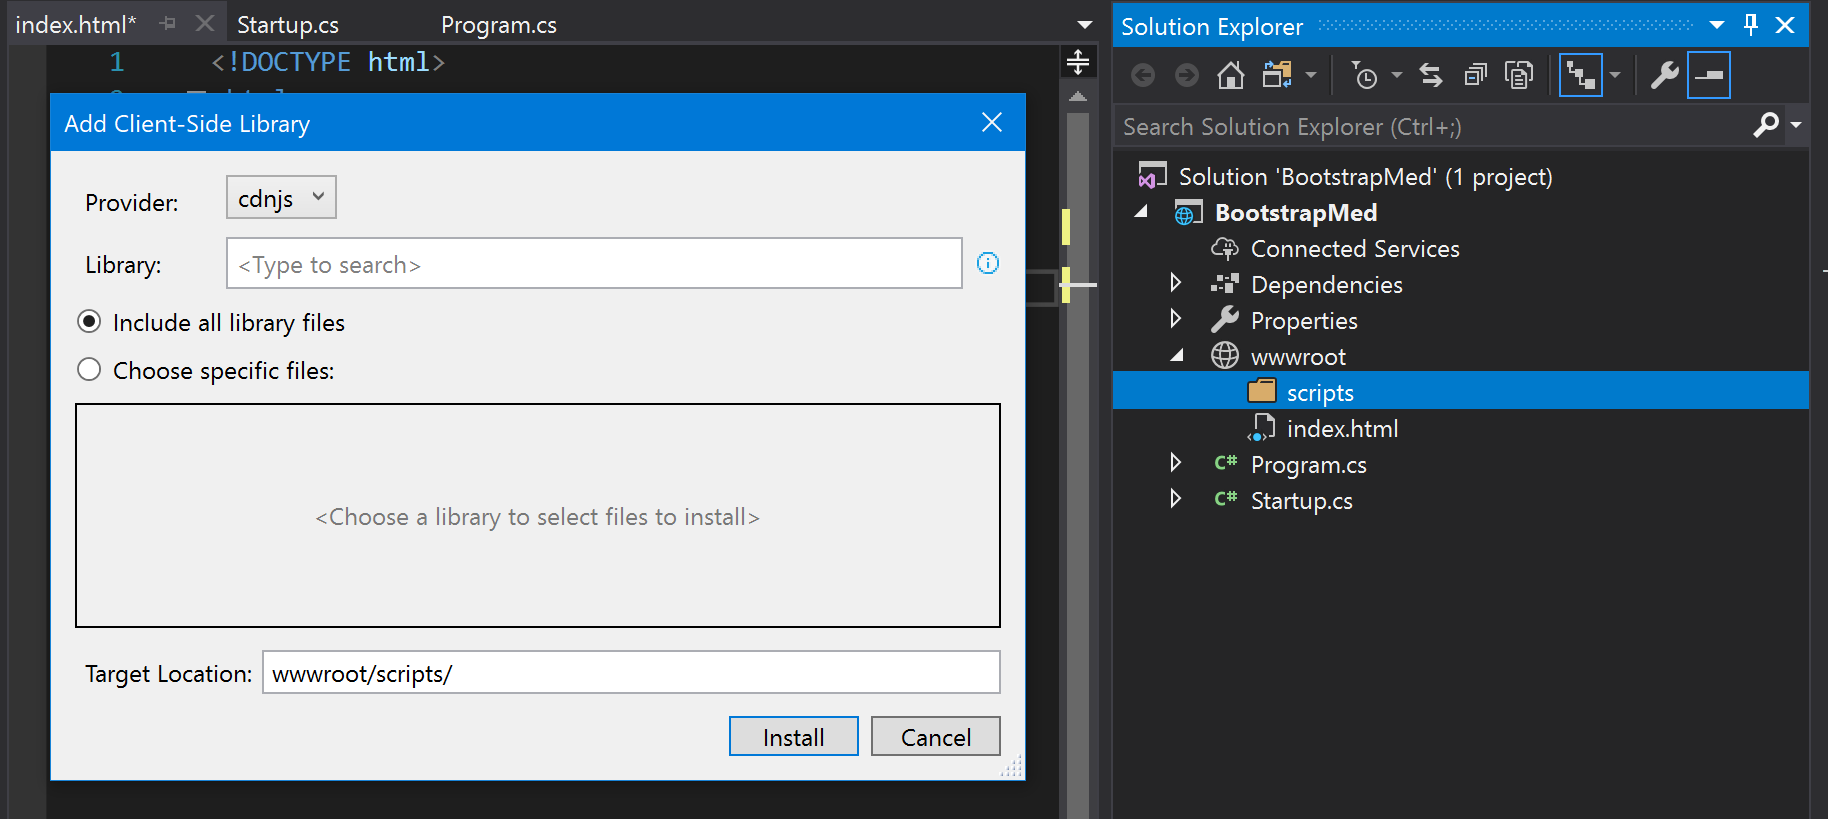 Using the new Visual Studio Library Manager